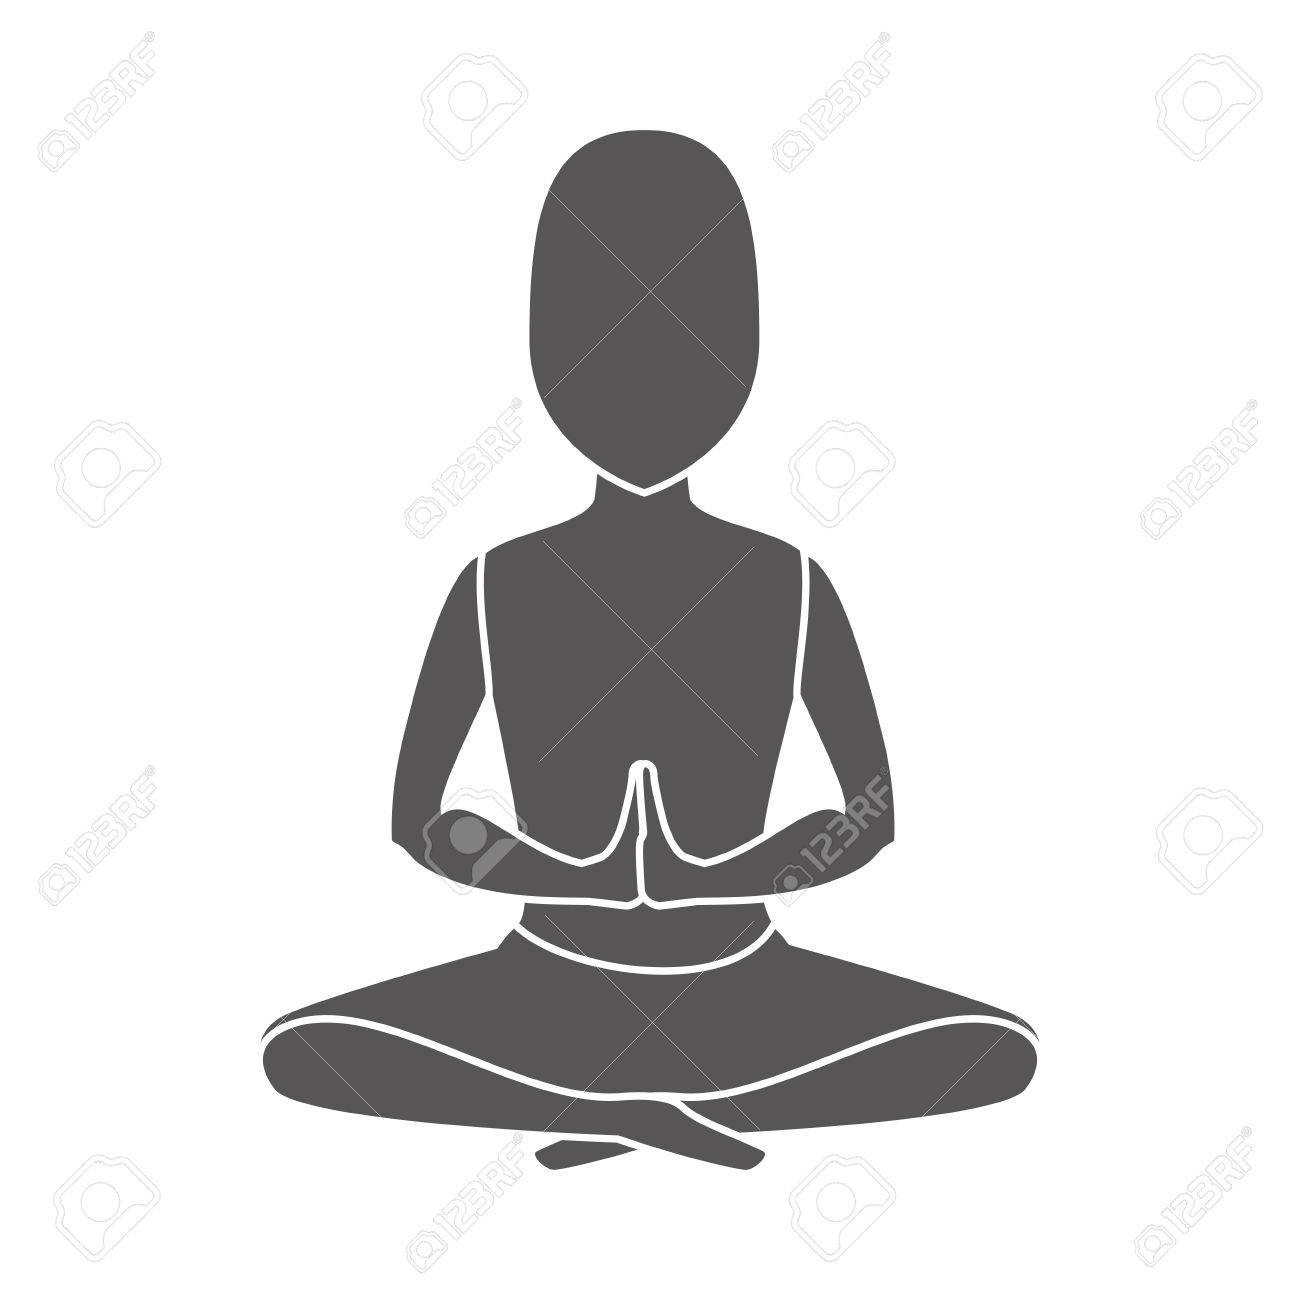 Yoga Pose Meditating Man Relaxation Exercise Silhouette Vector